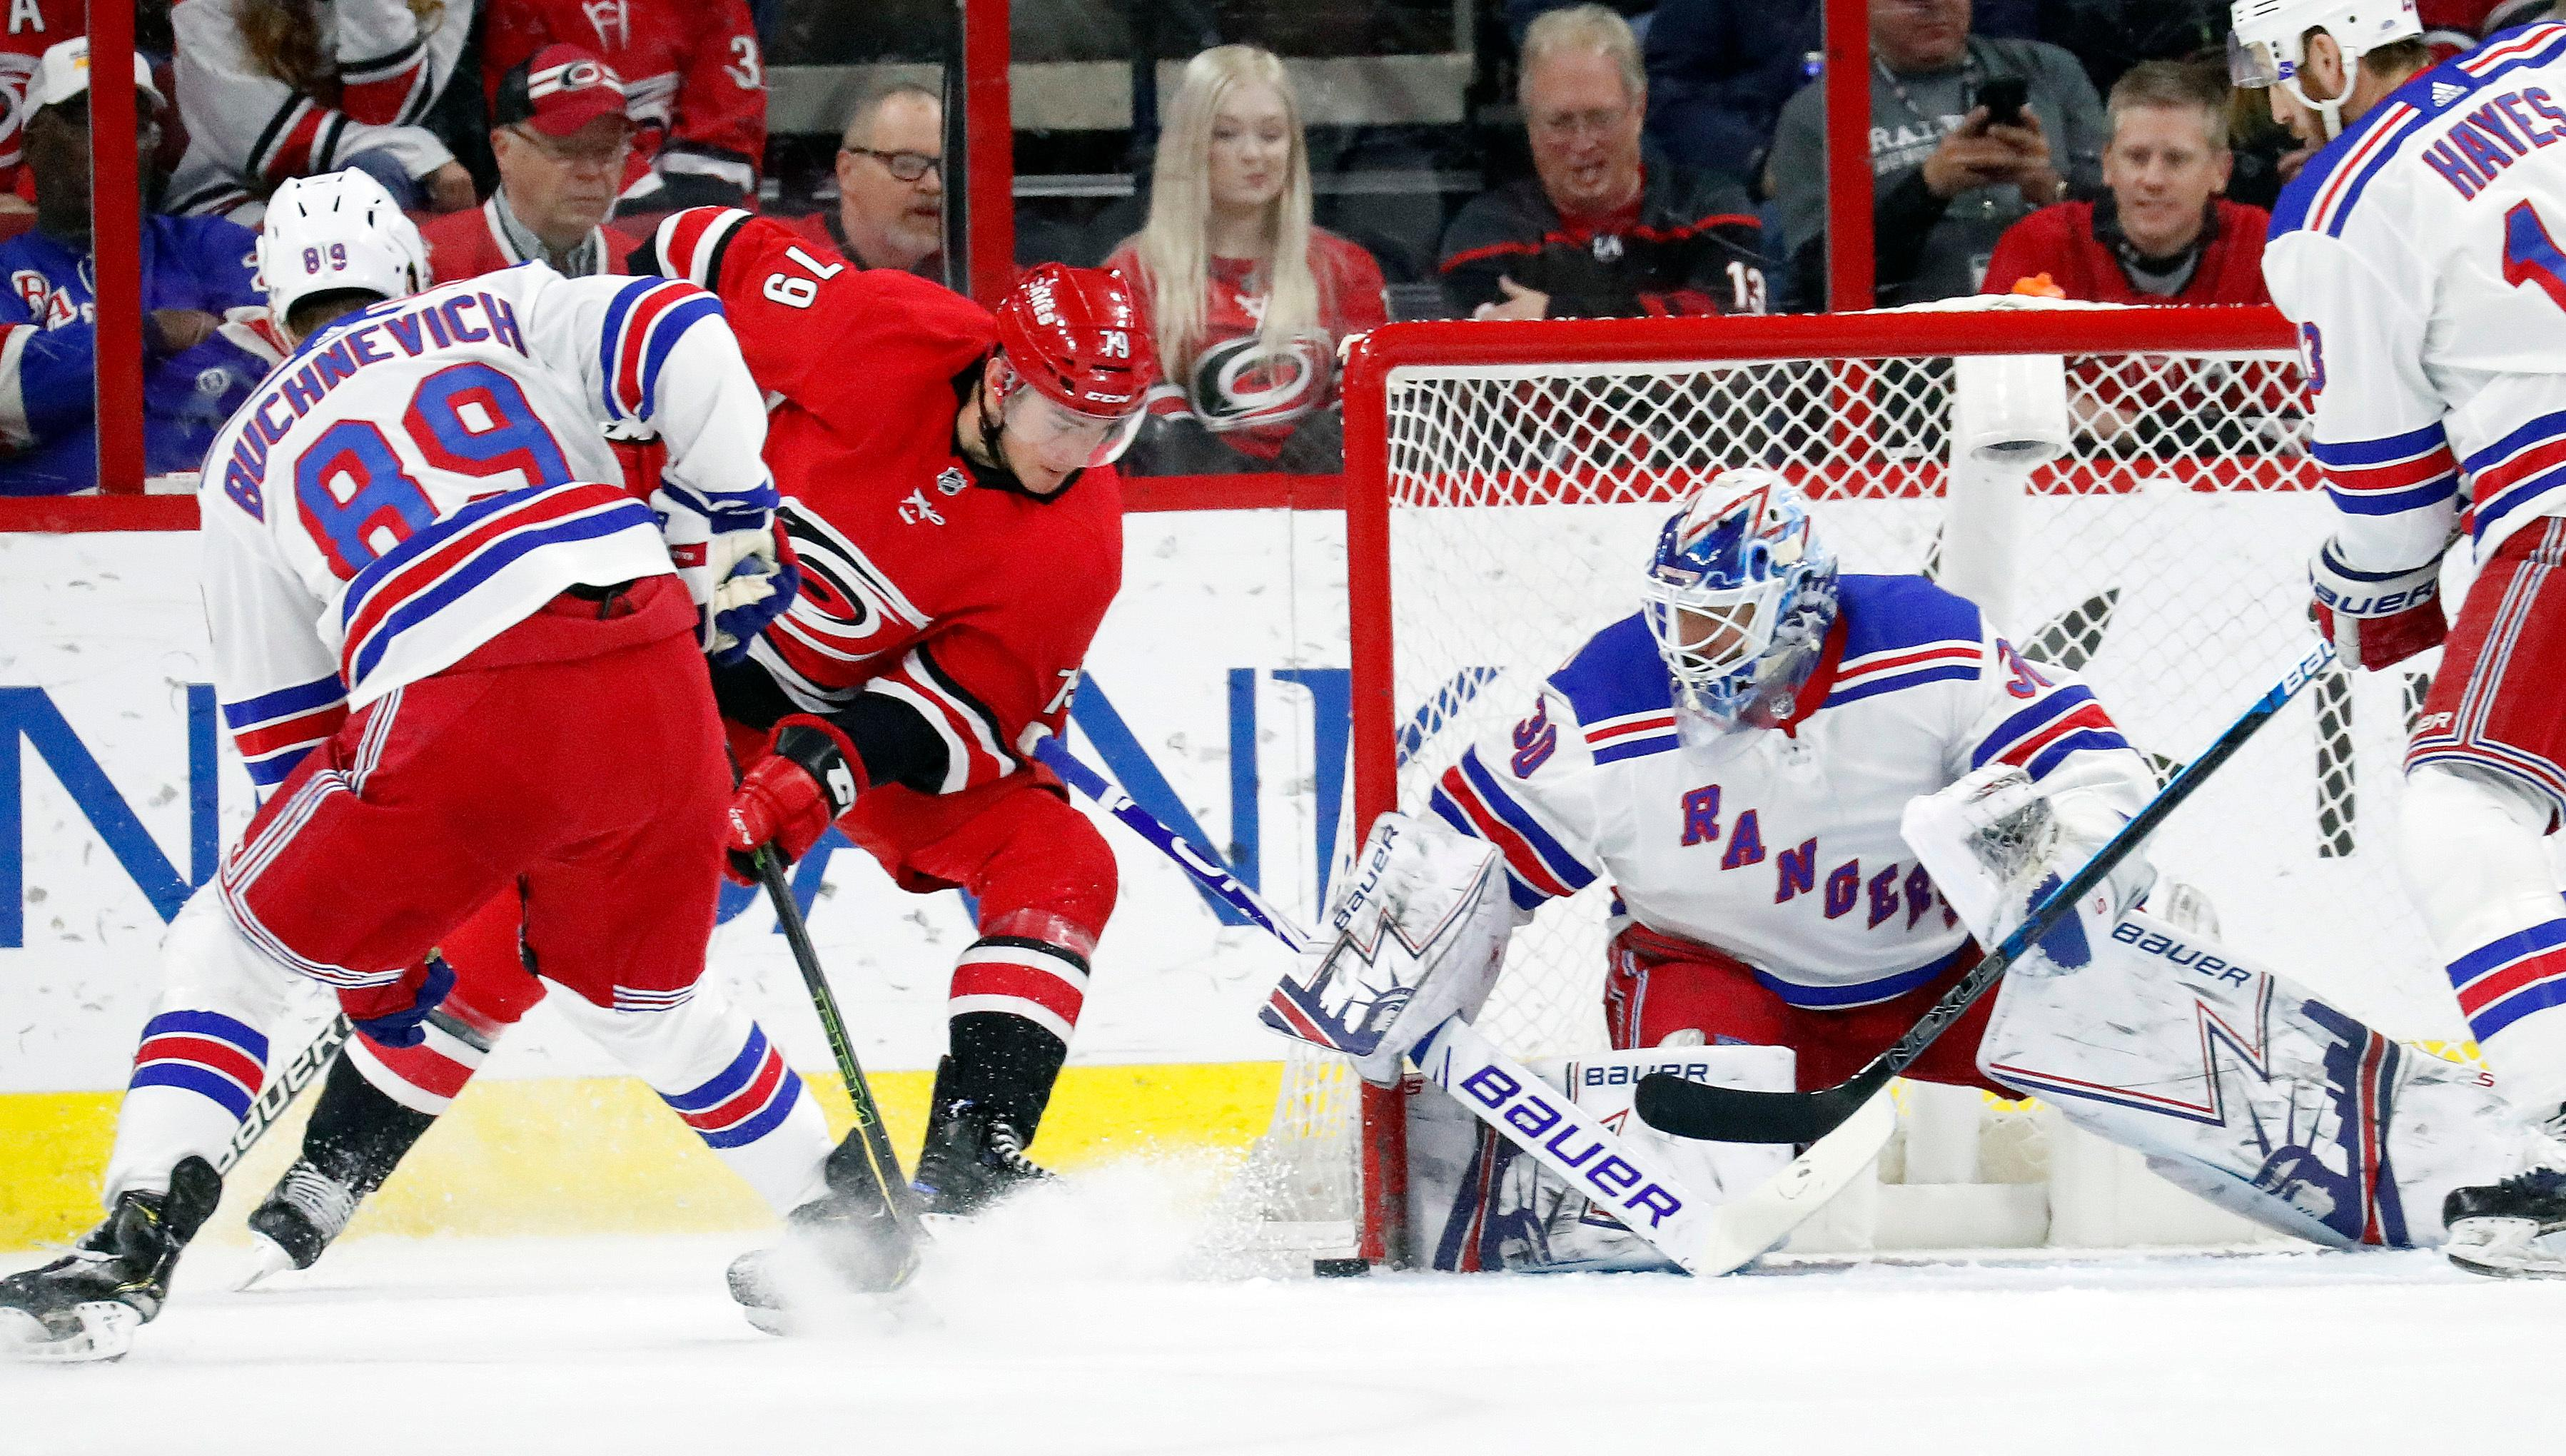 Carolina Hurricanes' Micheal Ferland (79) is defended by New York Rangers' Pavel Buchnevich (89) from Russia and Henrik Lundqvist (30) of Sweden during the first period of an NHL hockey game in Raleigh, N.C., Tuesday, Feb. 19, 2019. (AP Photo/Chris Seward)